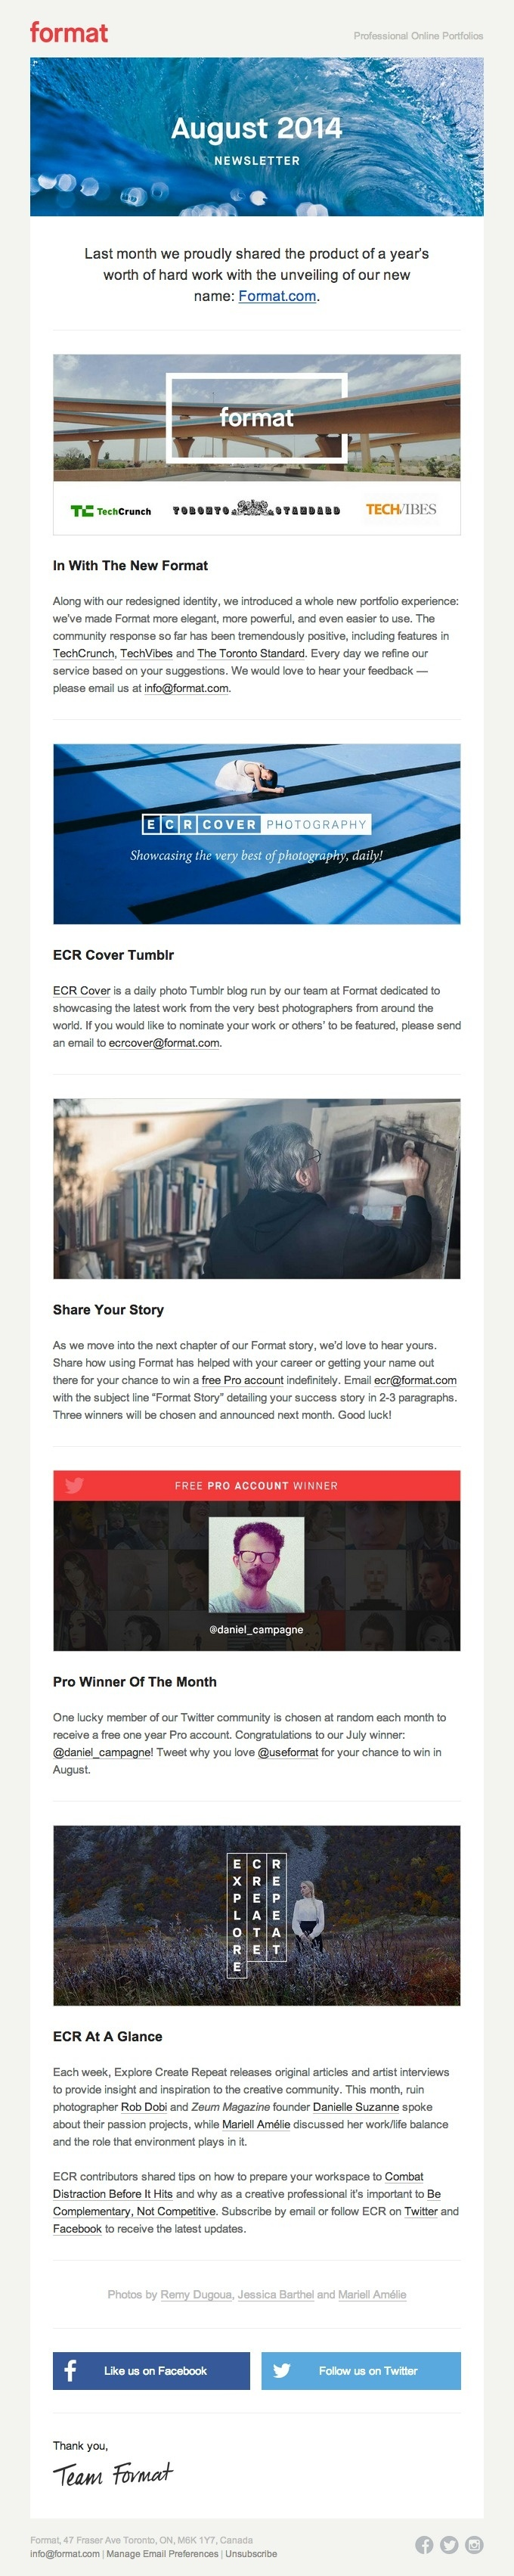 Product-Update-Email-Design-from-Format #email #mailing